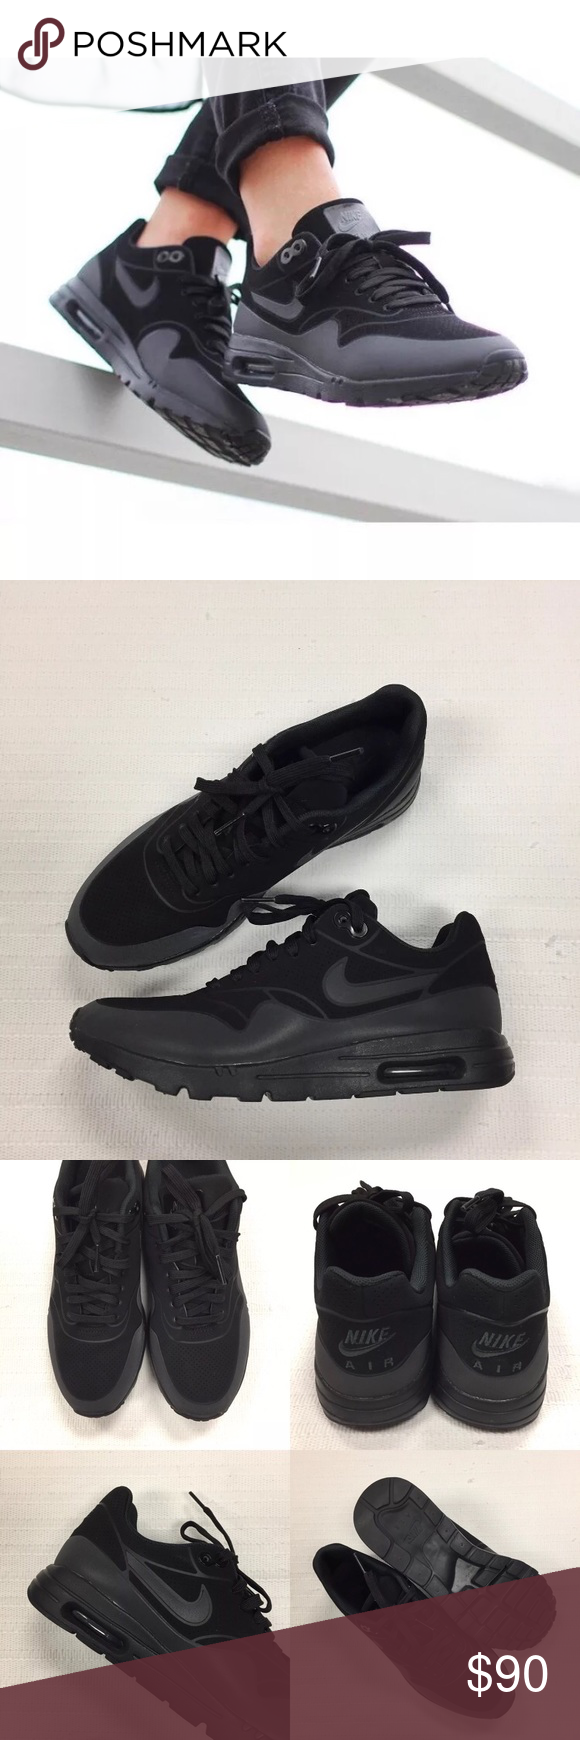 ... details for 43af4 8849e ... clearance womens nike air max 1 ultra moire  sneakers ... 2725119b4